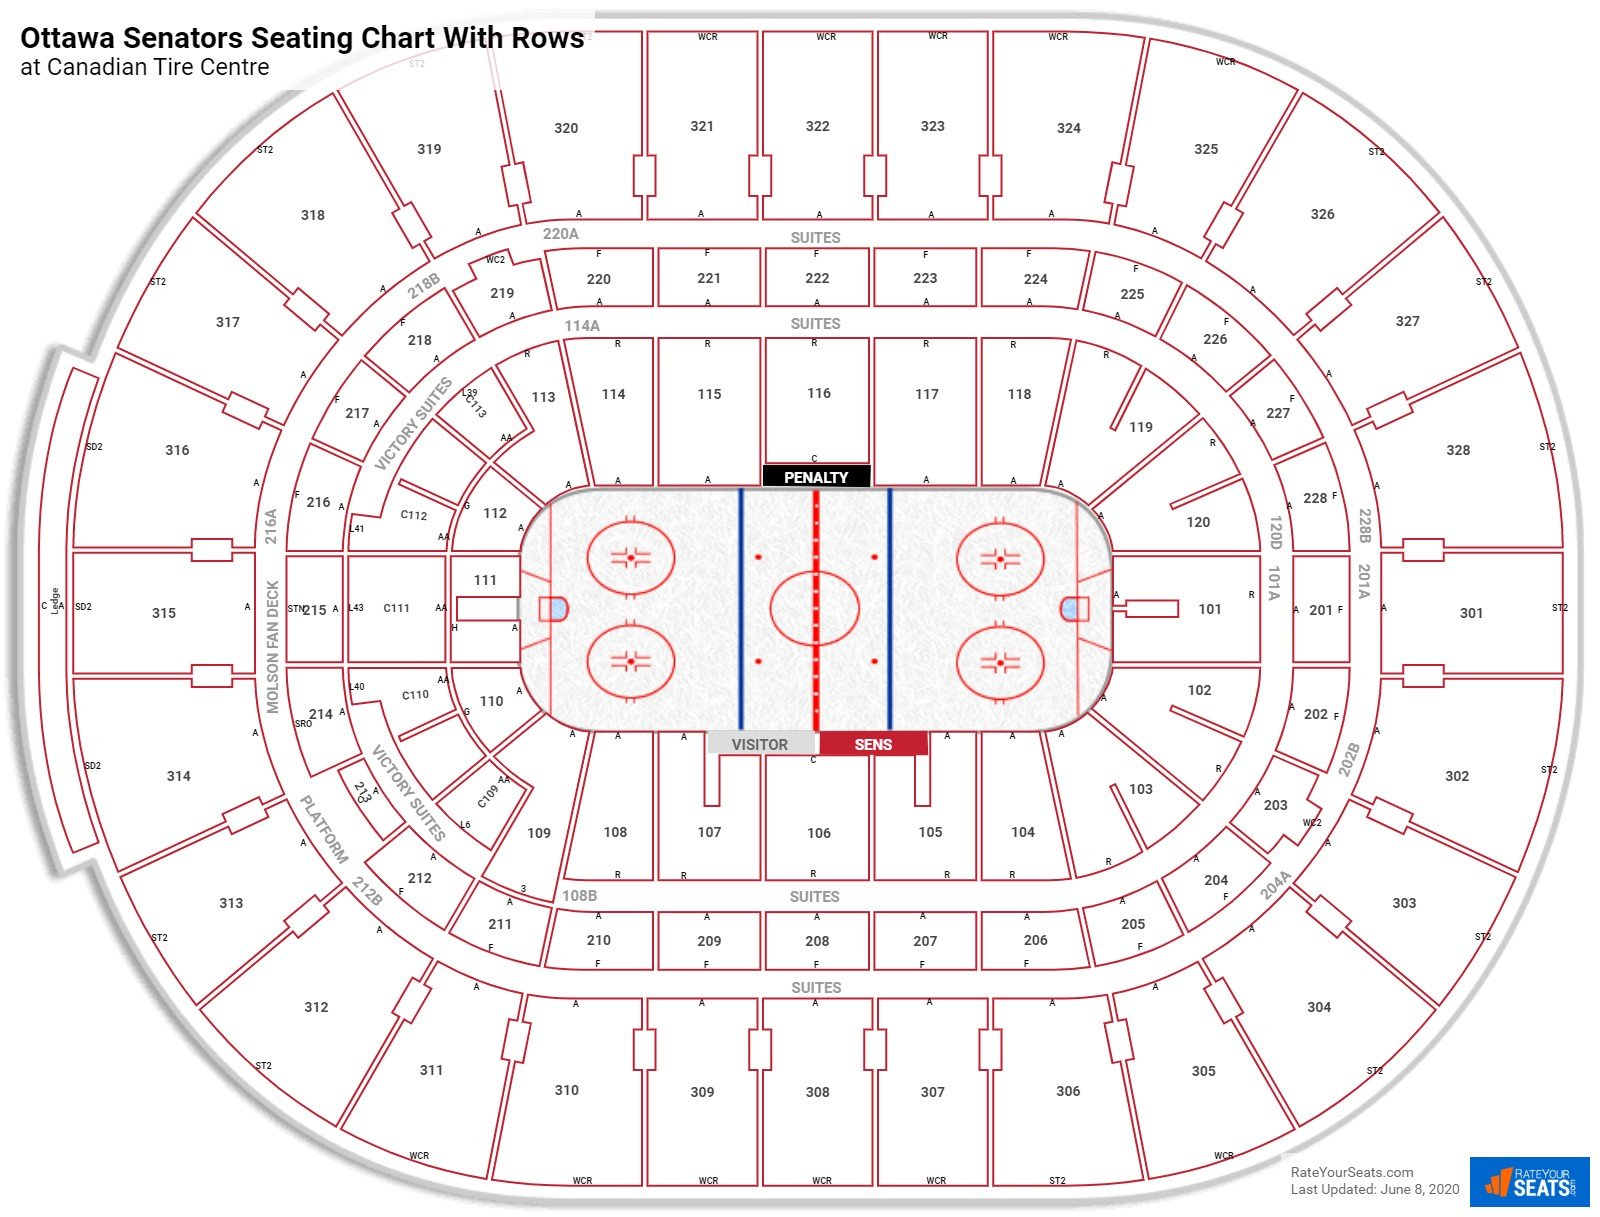 Canadian Tire Centre seating chart with rows hockey